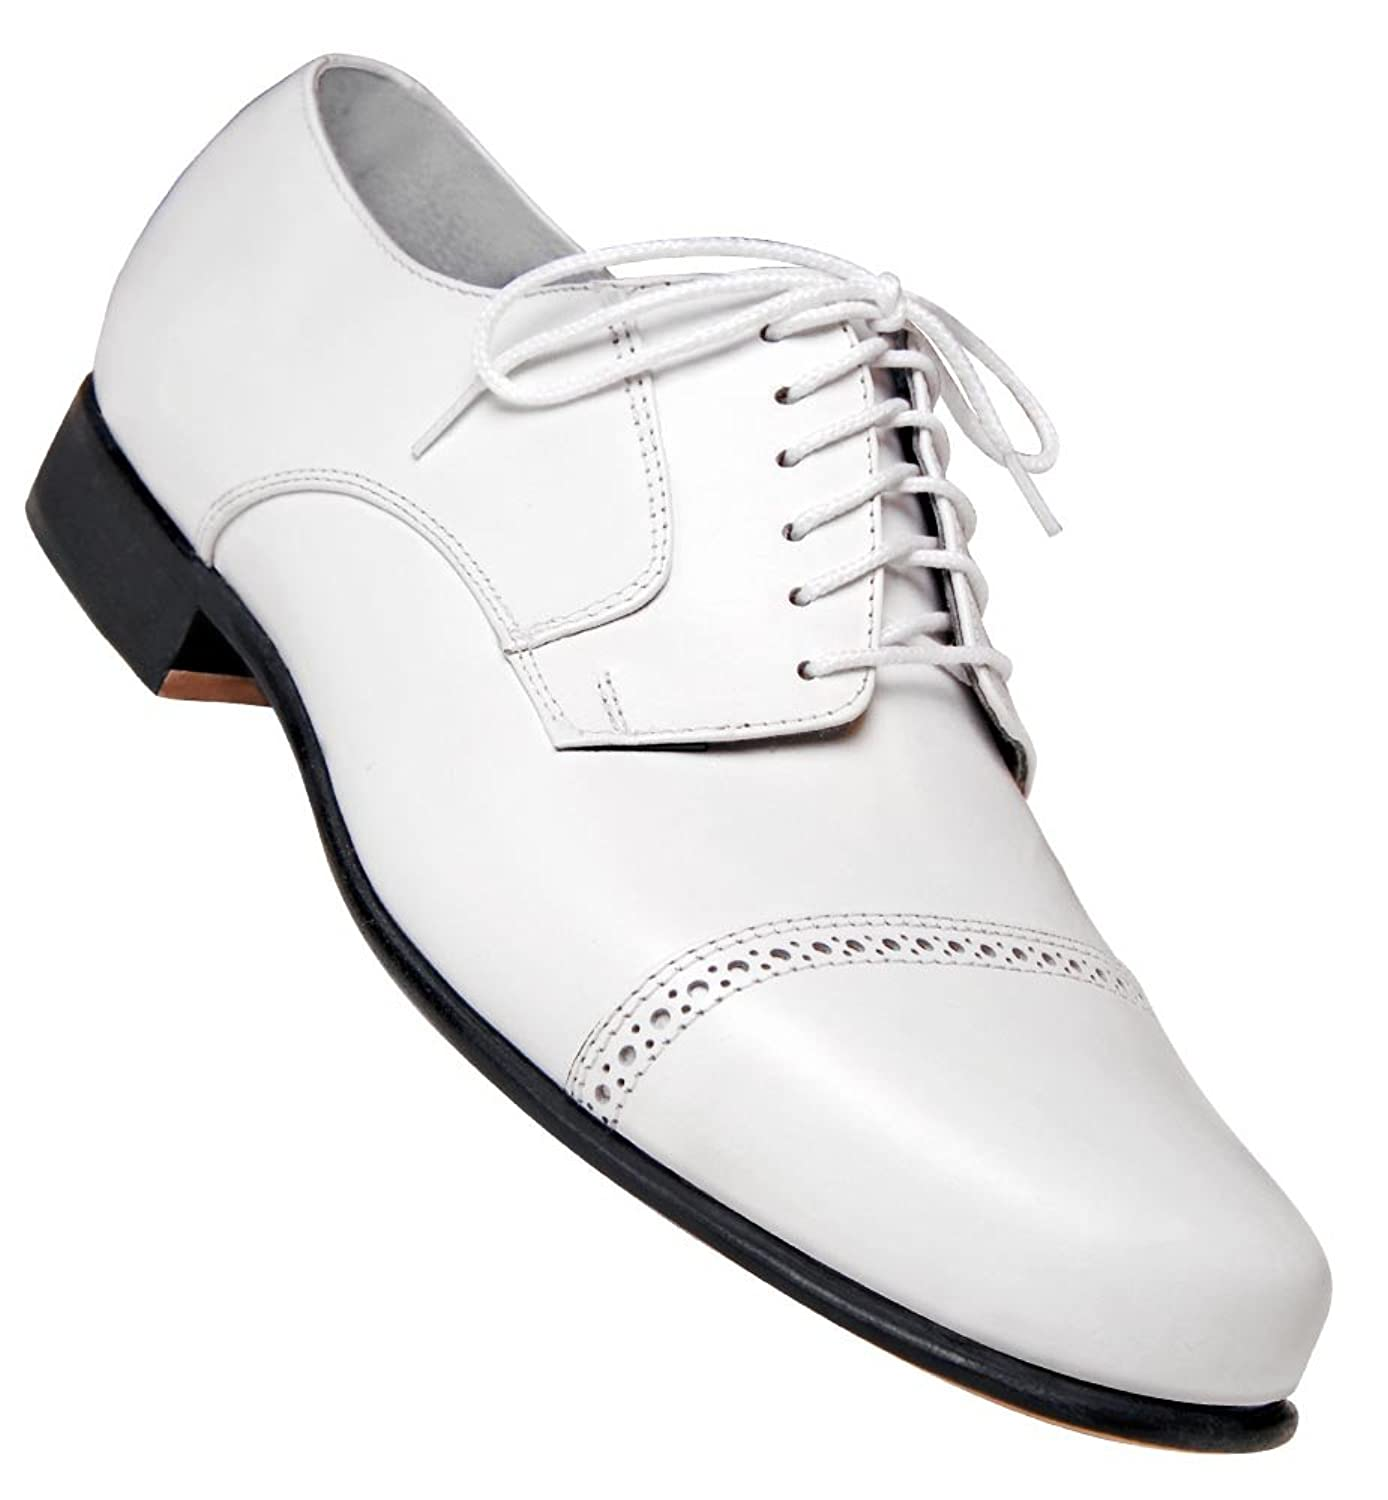 Aris Allen Mens 1930s White Captoe Dance Shoe $74.95 AT vintagedancer.com